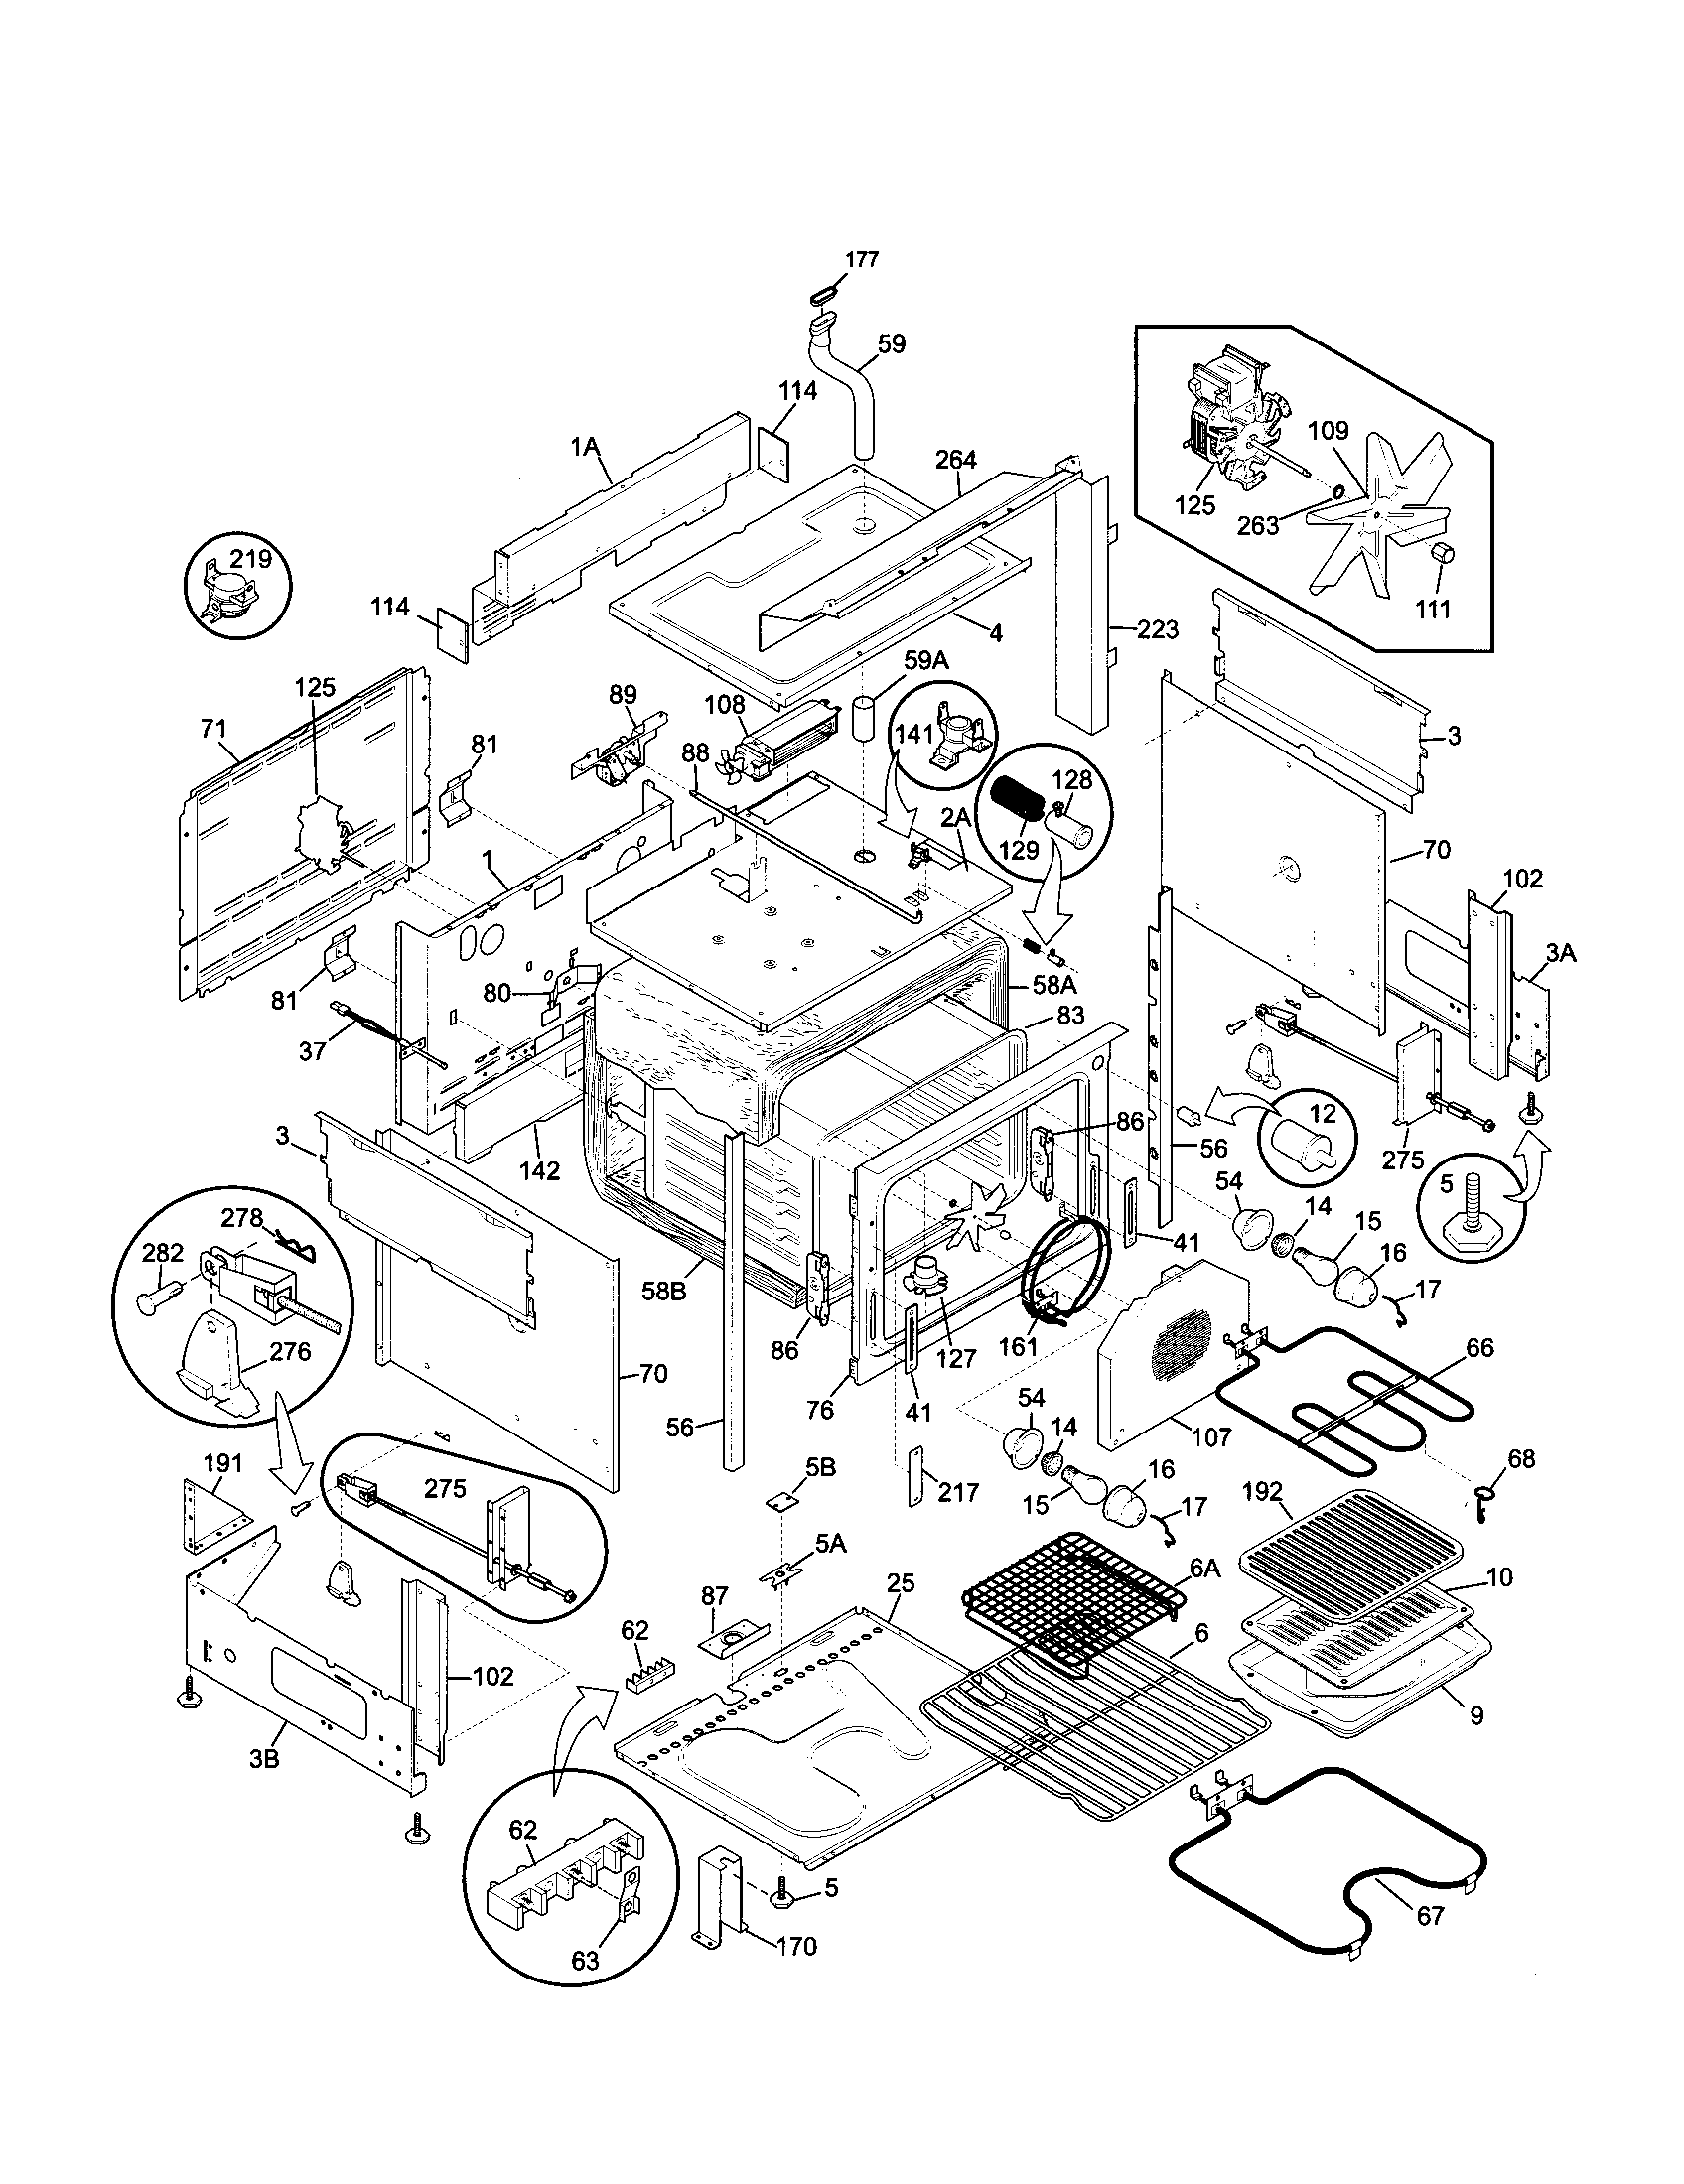 Wiring Diagram Kenmore Dishwasher | Wiring Diagram on ceiling fan wiring schematic, ge washer wiring schematic, whirlpool wiring schematic, refrigerator wiring schematic, maytag wiring schematic, heat pump wiring schematic, ge oven wiring schematic, ice maker wiring schematic, electric dryer wiring schematic,